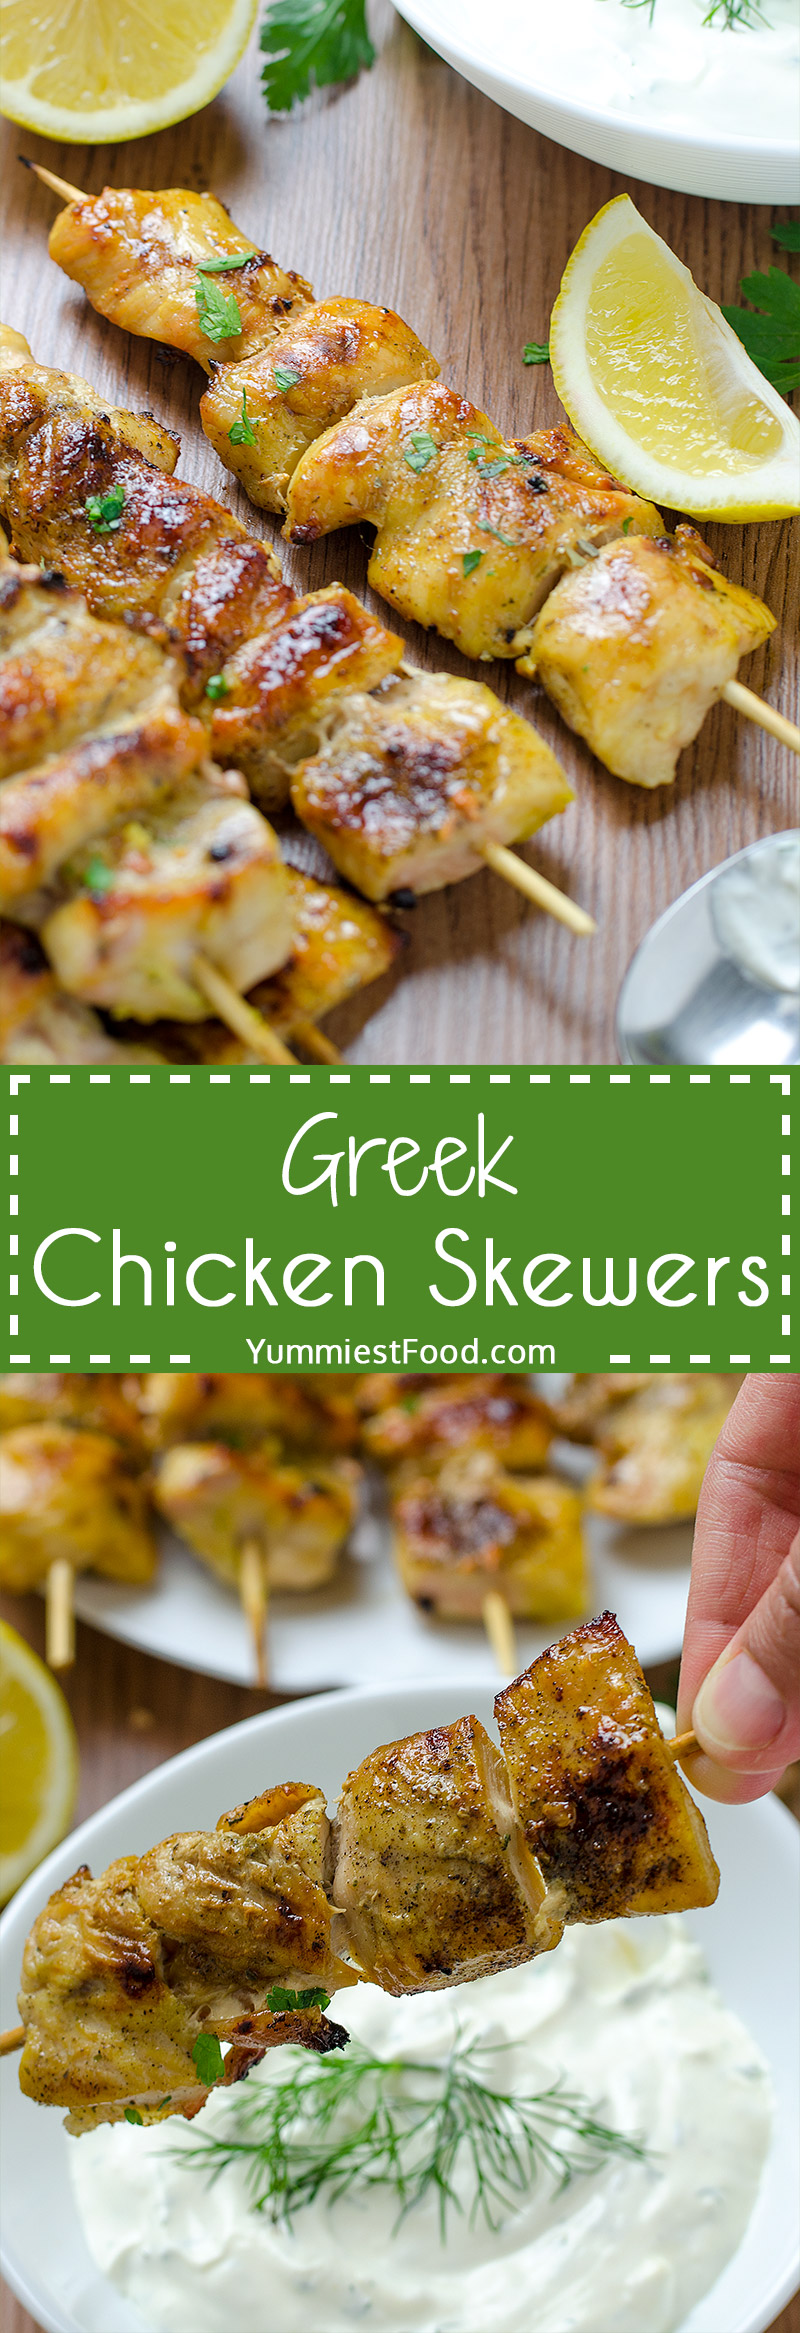 Quick and Easy Greek Chicken Skewers with Homemade Tzatziki Sauce